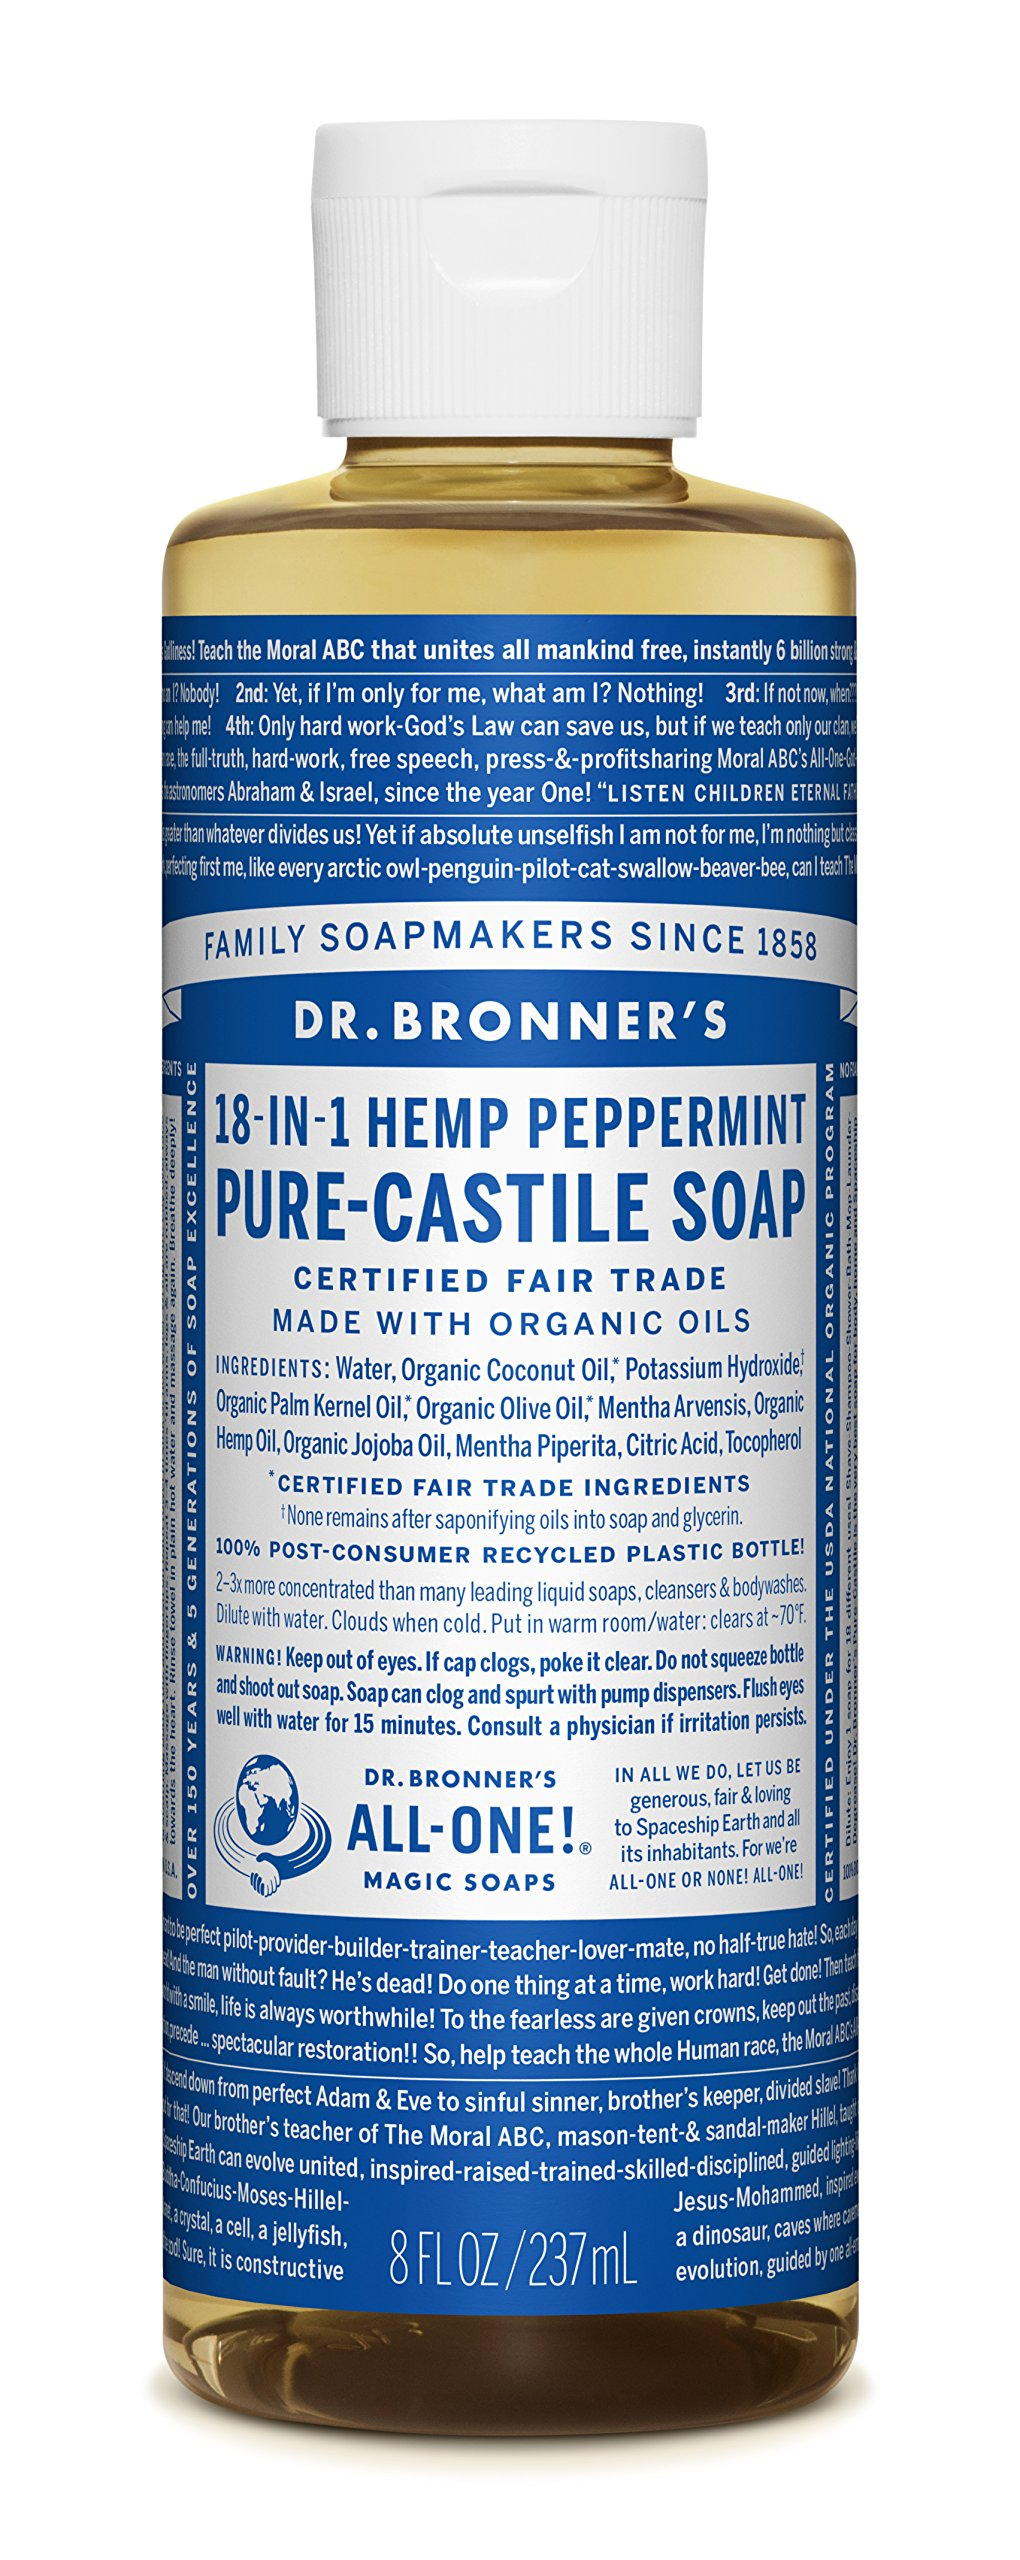 Dr. Bronner's Pure-Castile Liquid Soap - Peppermint, 8 Oz